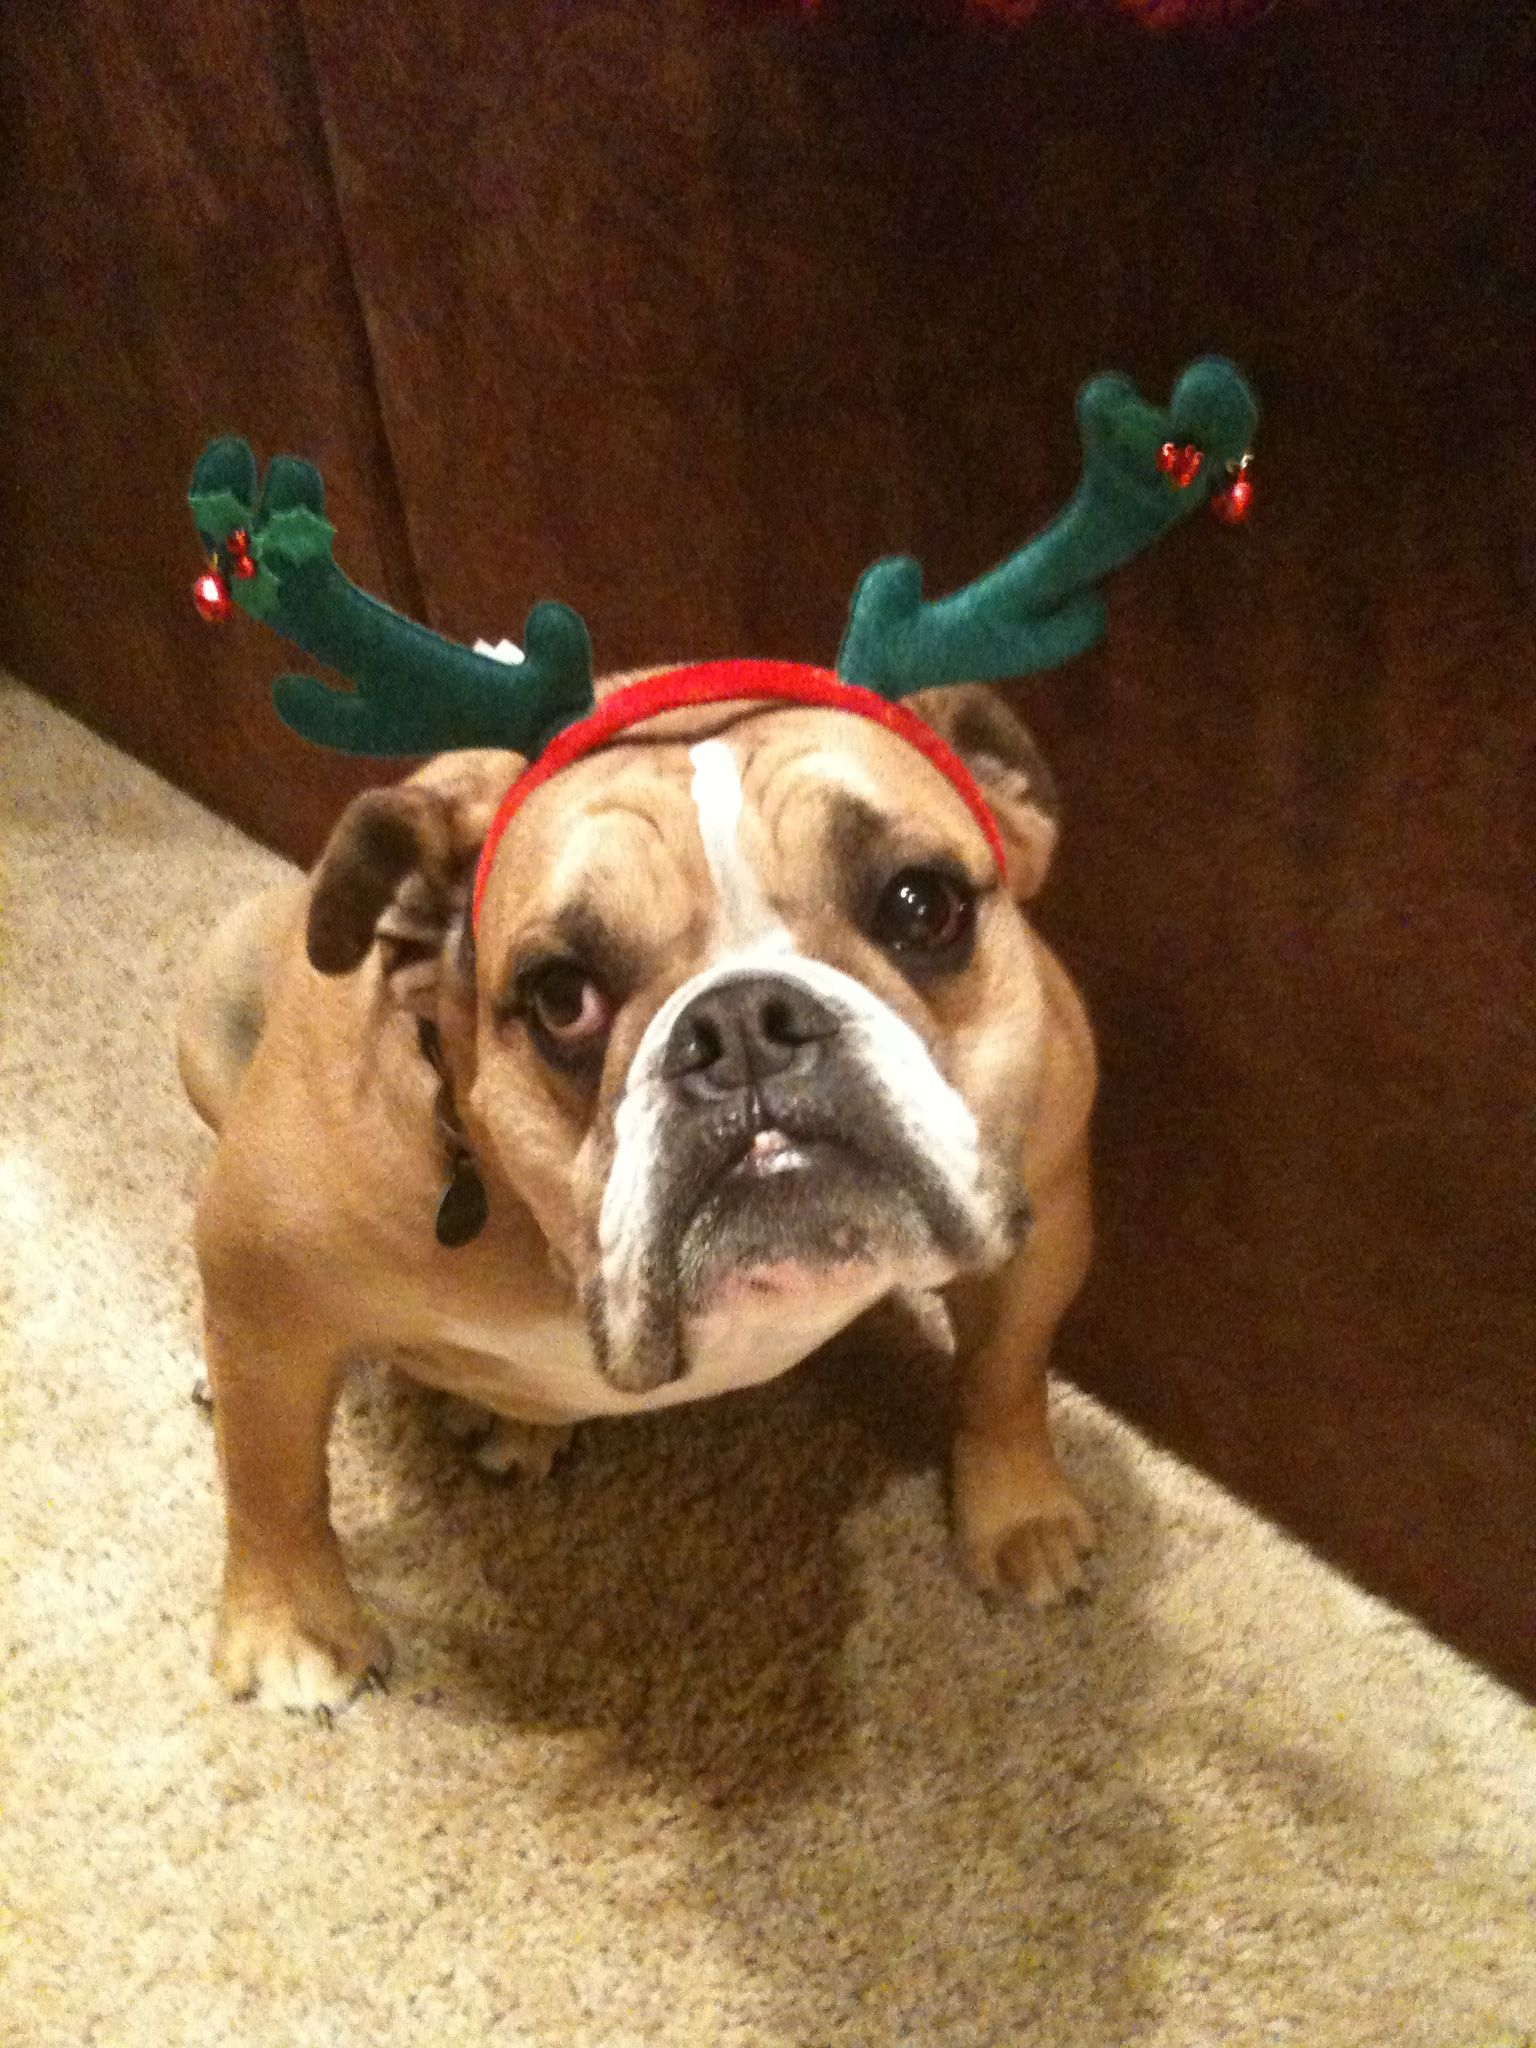 Why do I always have to be the reindeer?